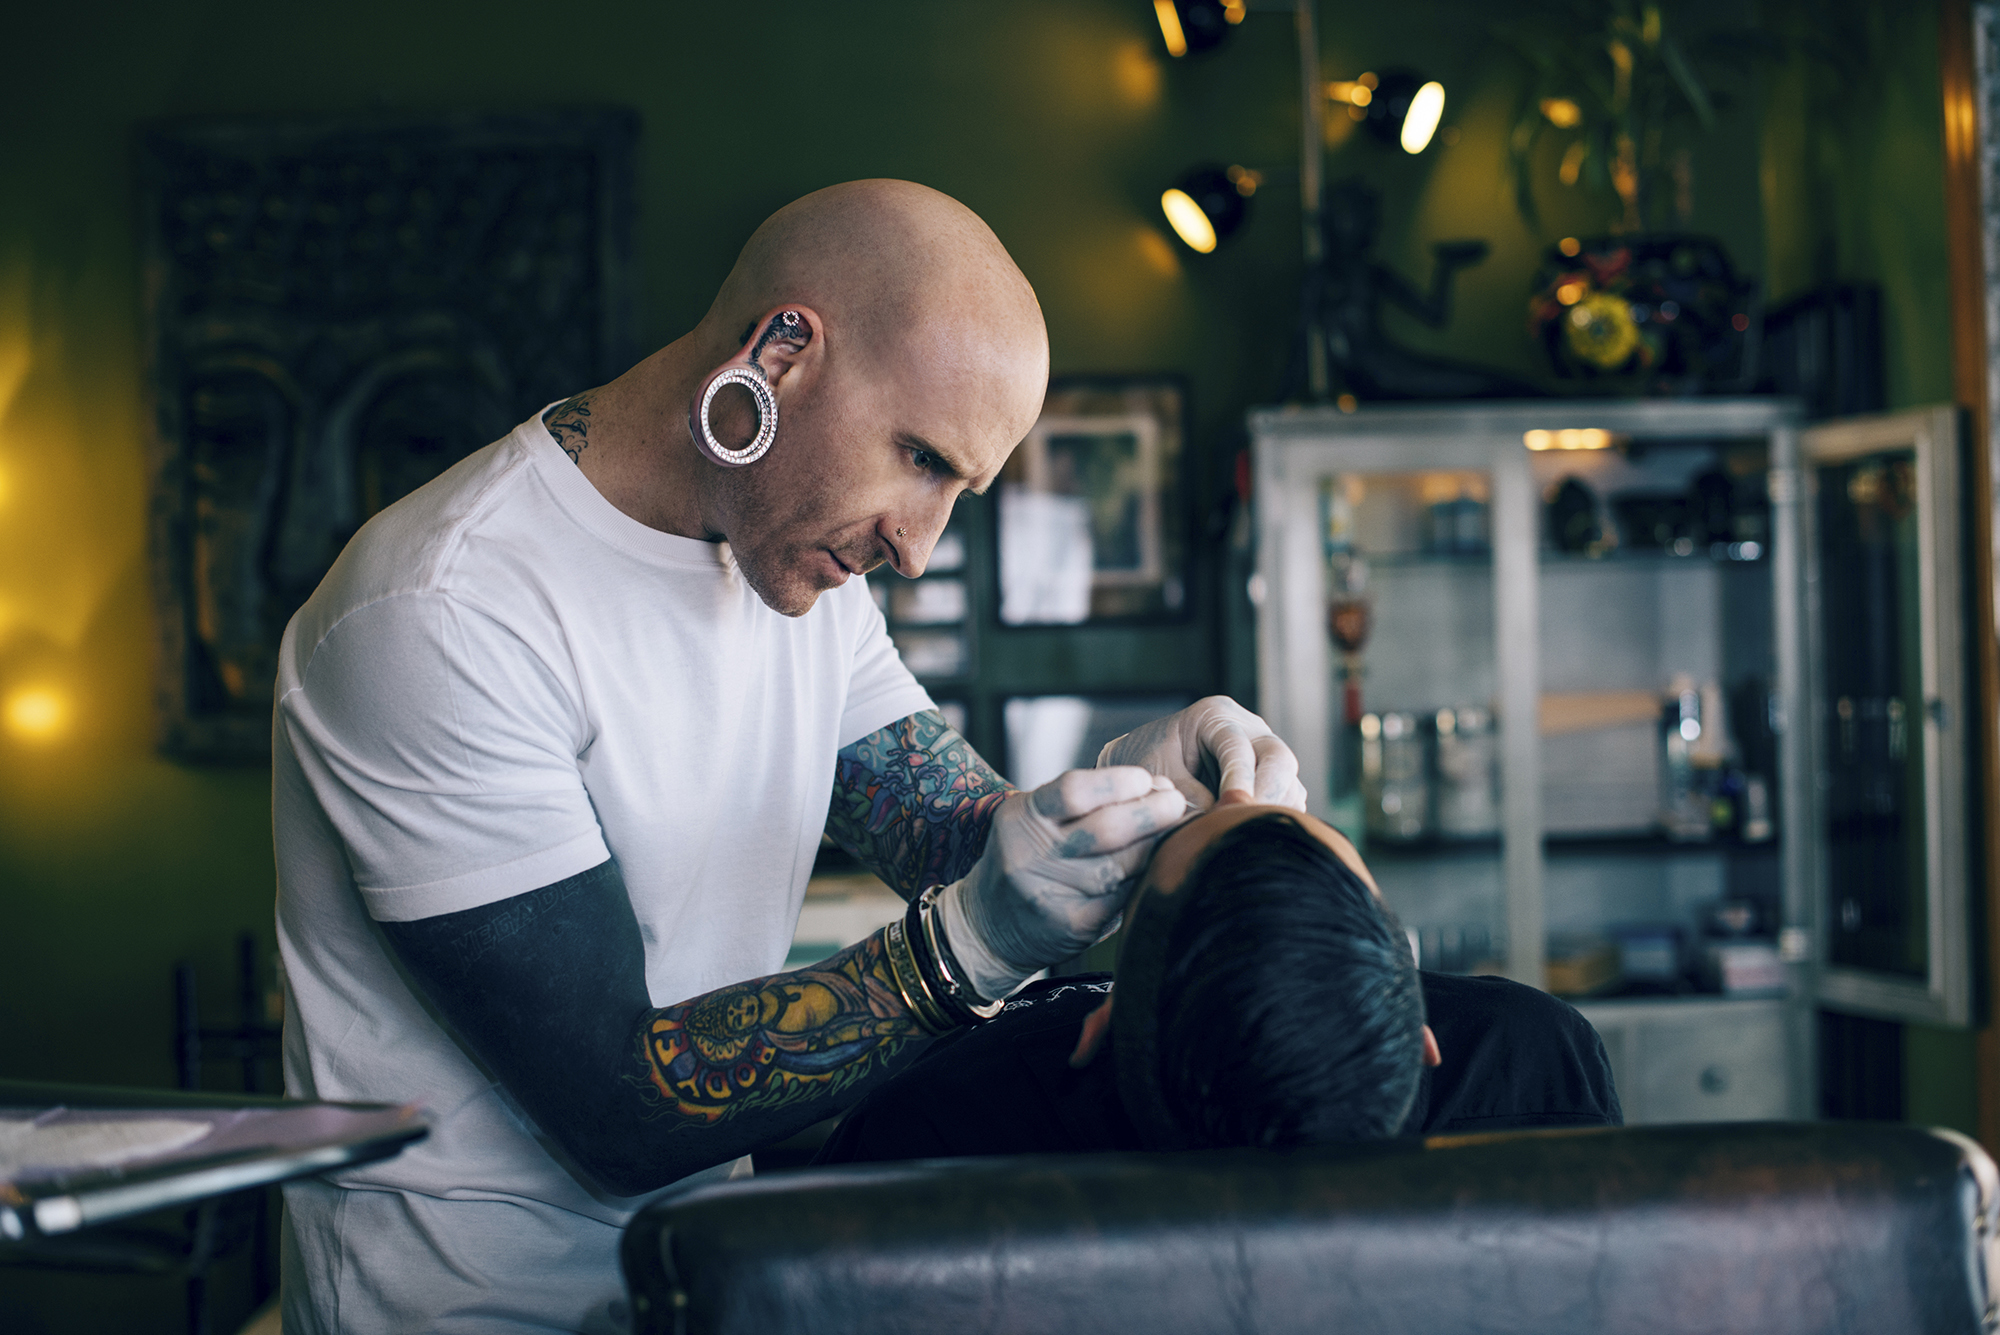 New report released on tattoo safety